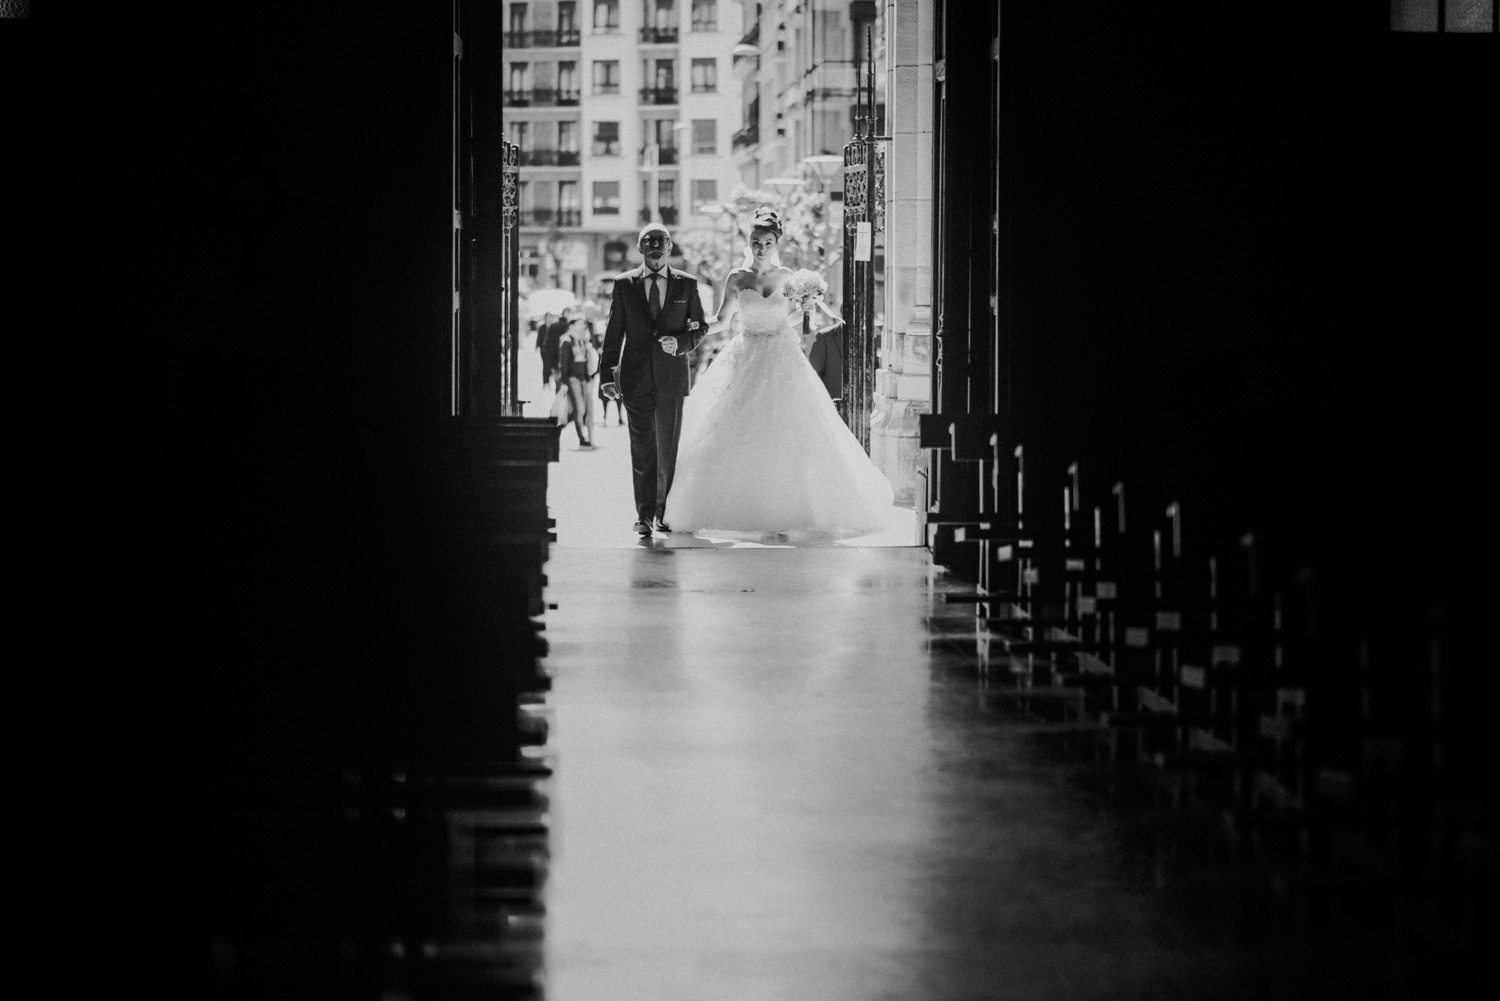 30 Fotografo de bodas - Destination wedding photographer san sebastian and worlwide-34